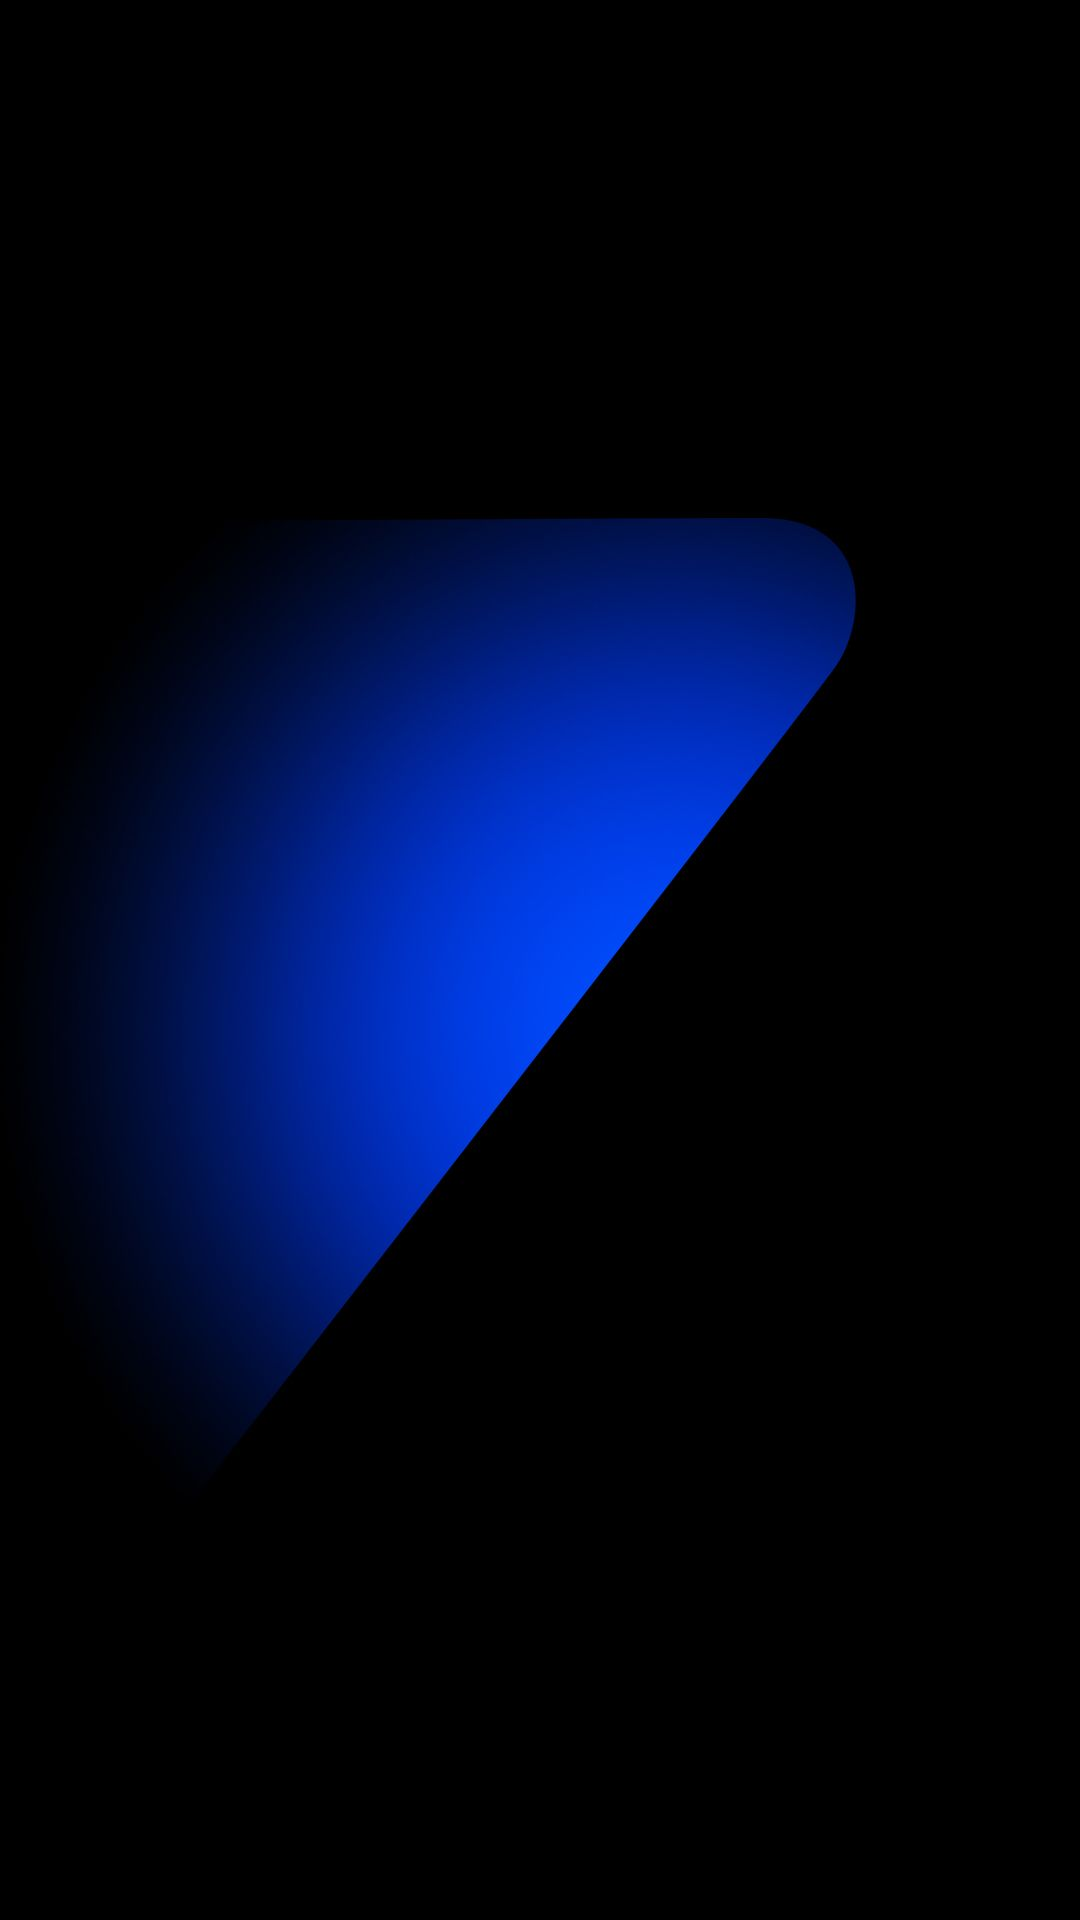 Samsung Galaxy S7 Edge Lock Screen Wallpaper